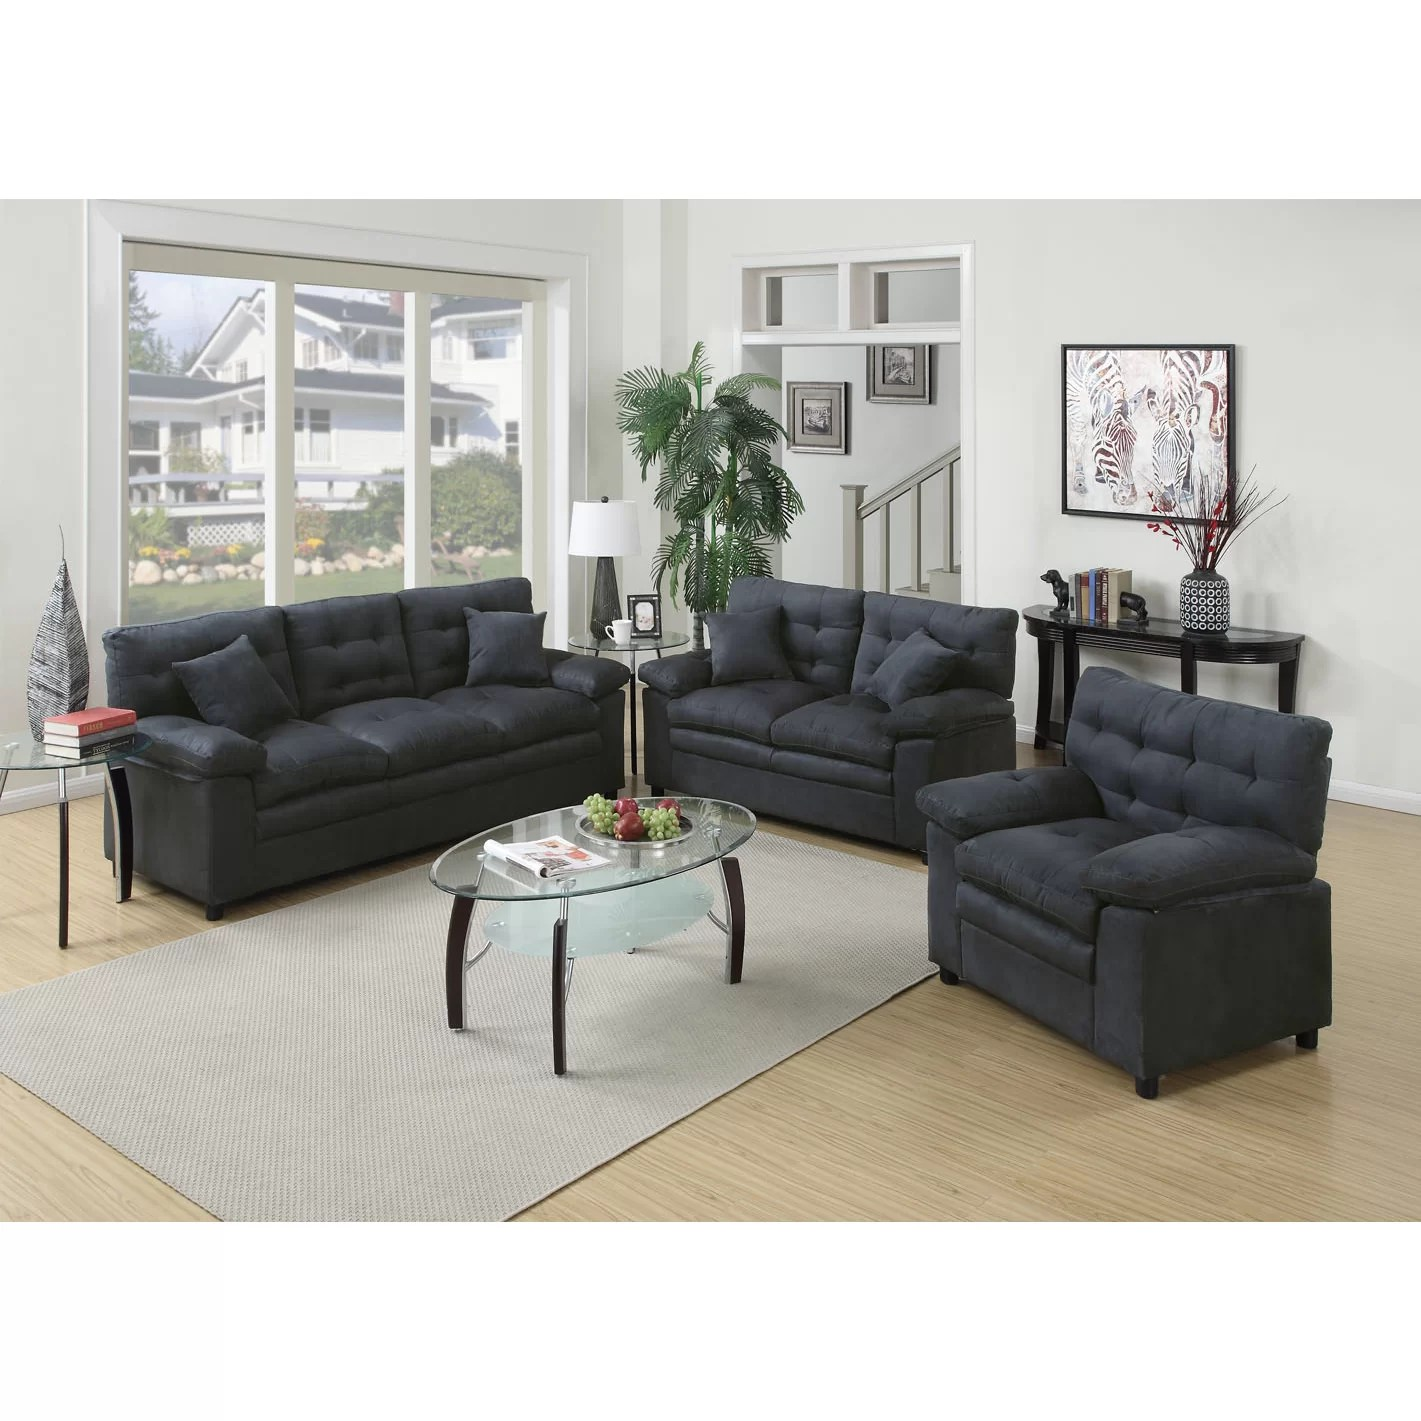 Poundex Bobkona Colona 3 Piece Living Room Set  Reviews